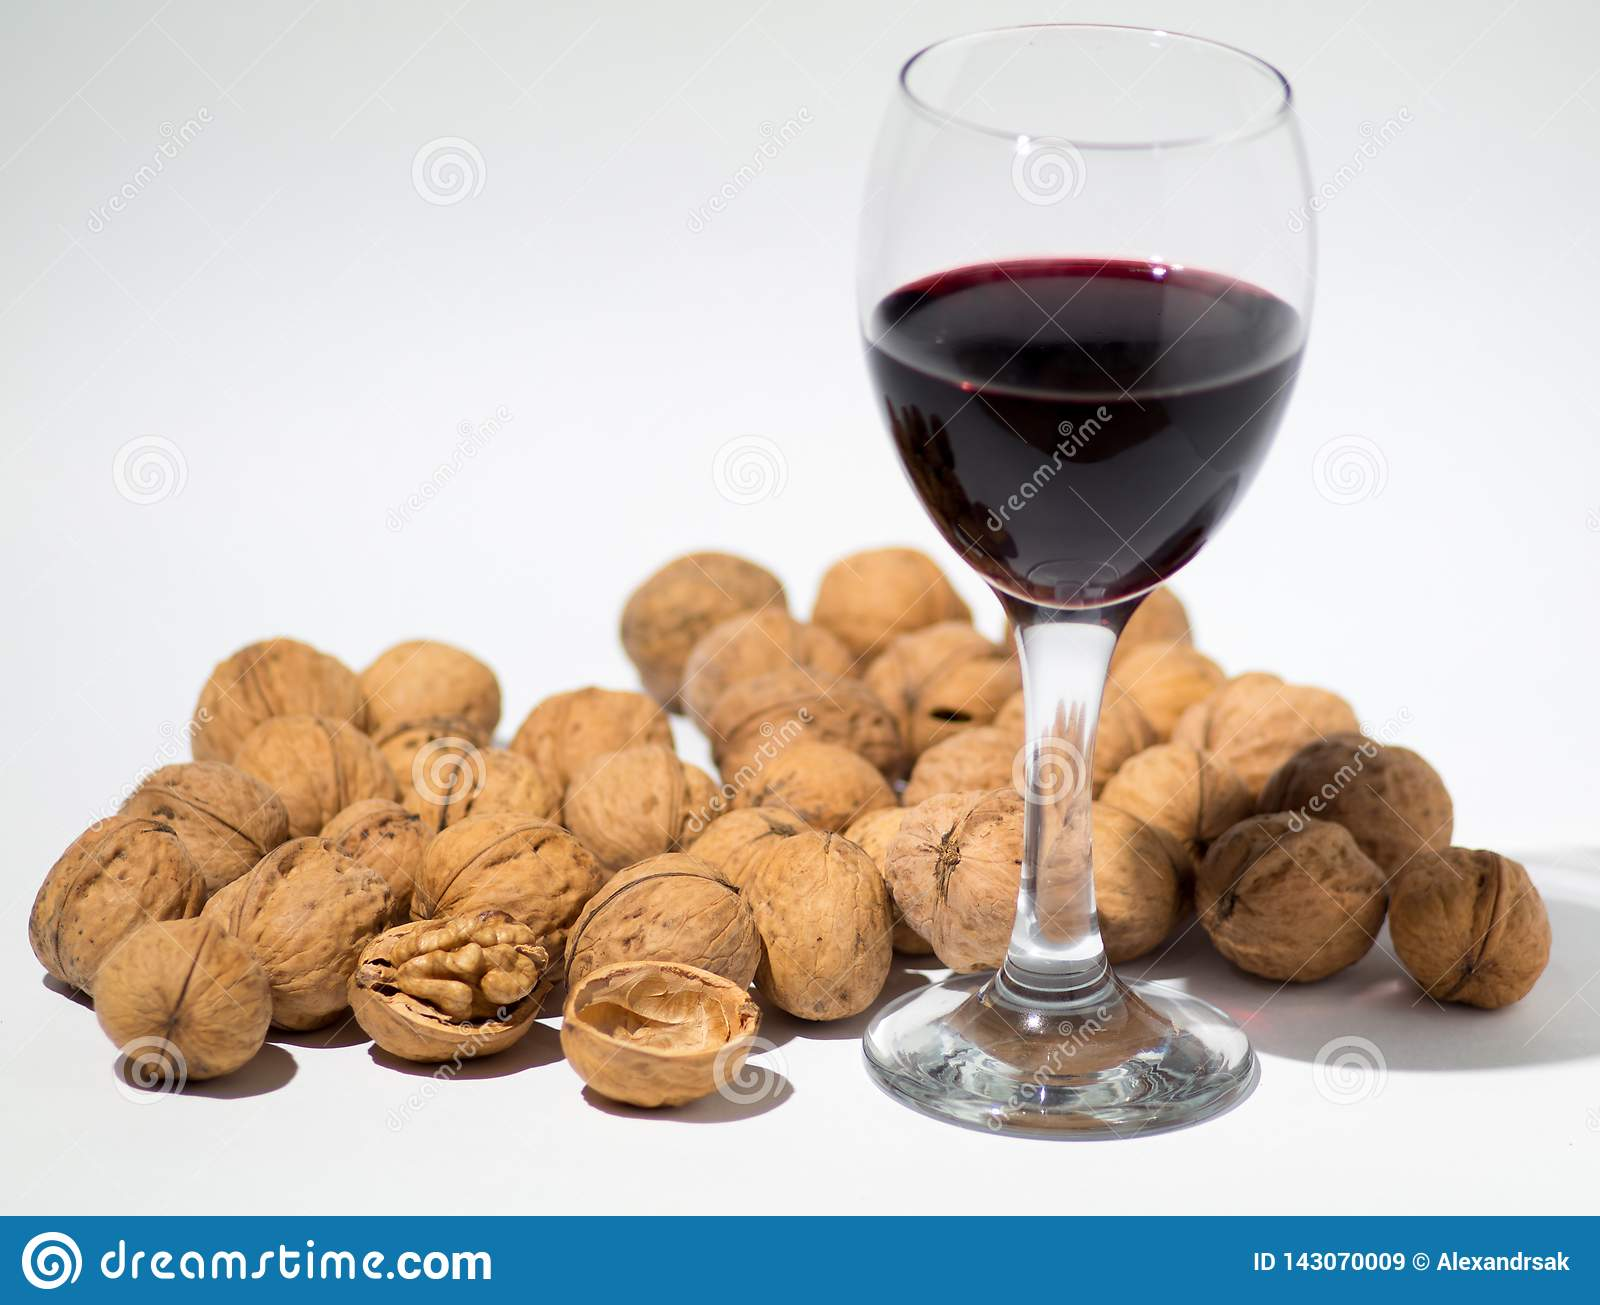 Red wine and walnut on background